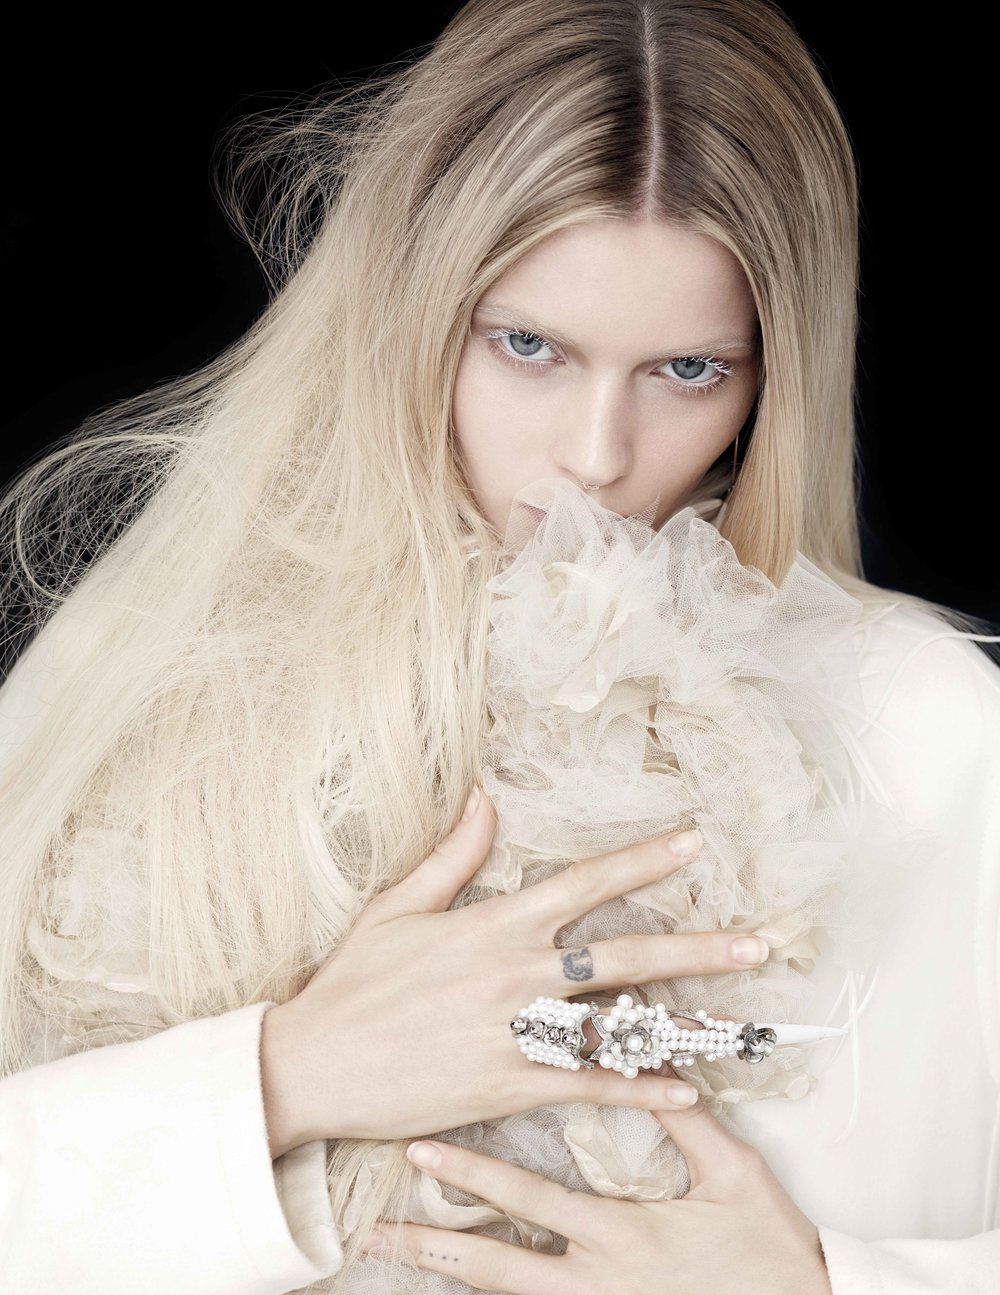 Abbey_Lee_01_0058_05.jpg